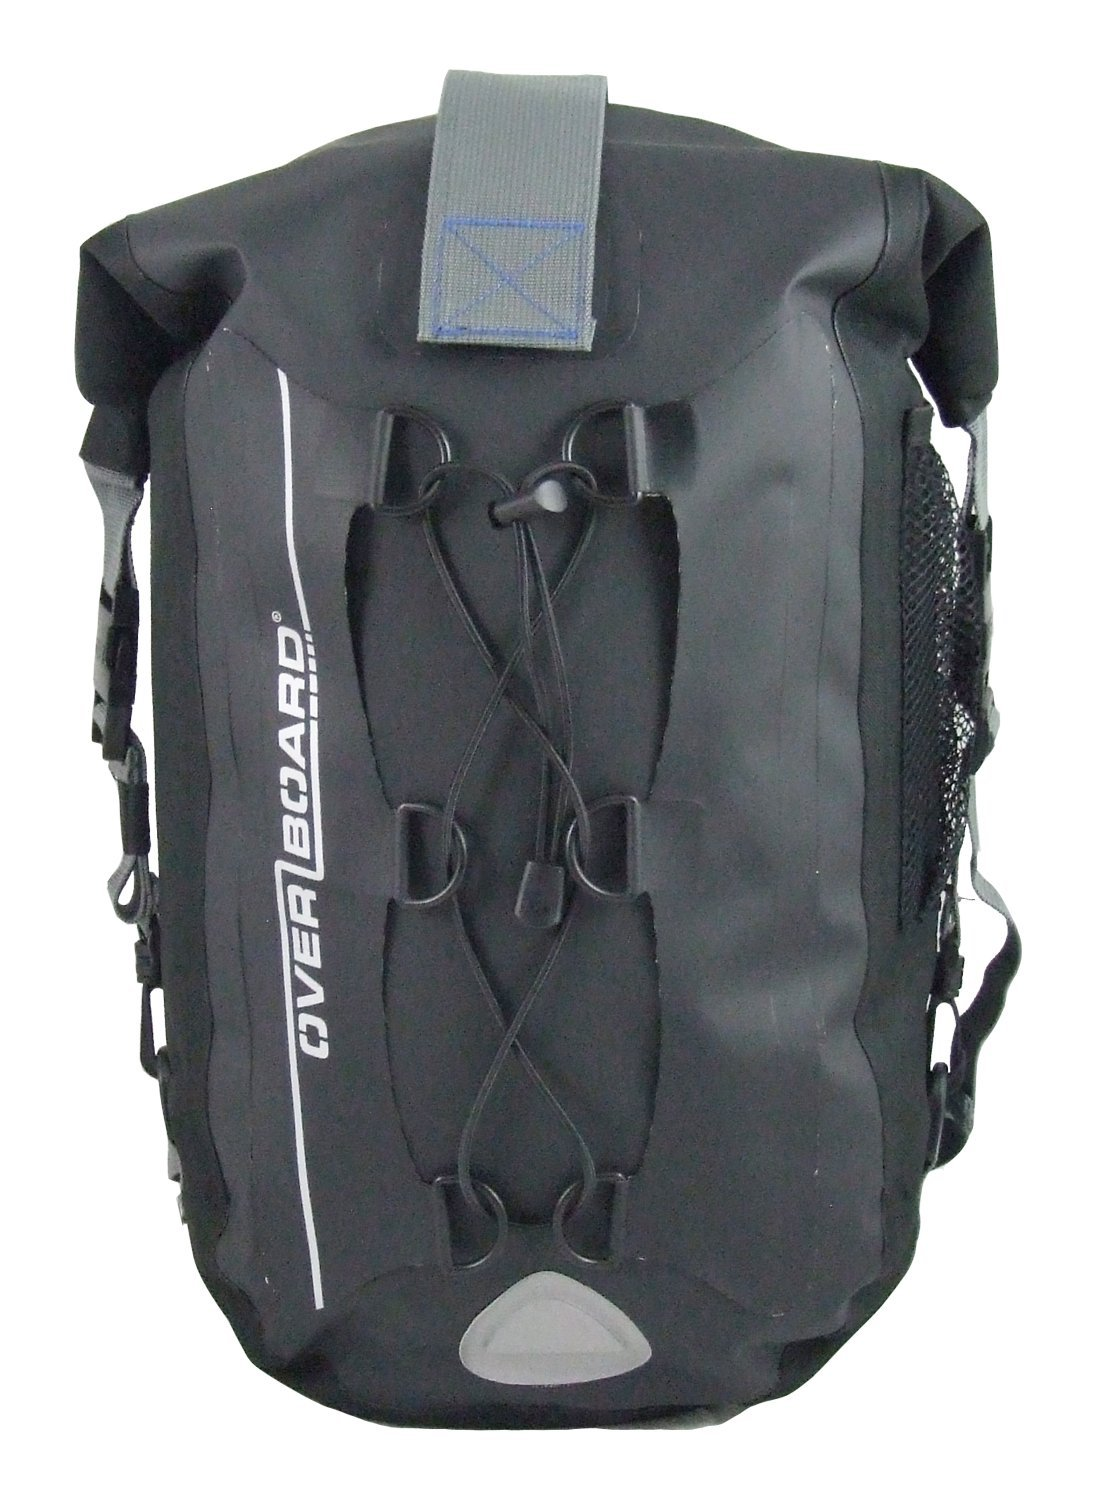 Reflective Waterproof Backpack Rain Cover Night Safety Light Raincover Case HWFR